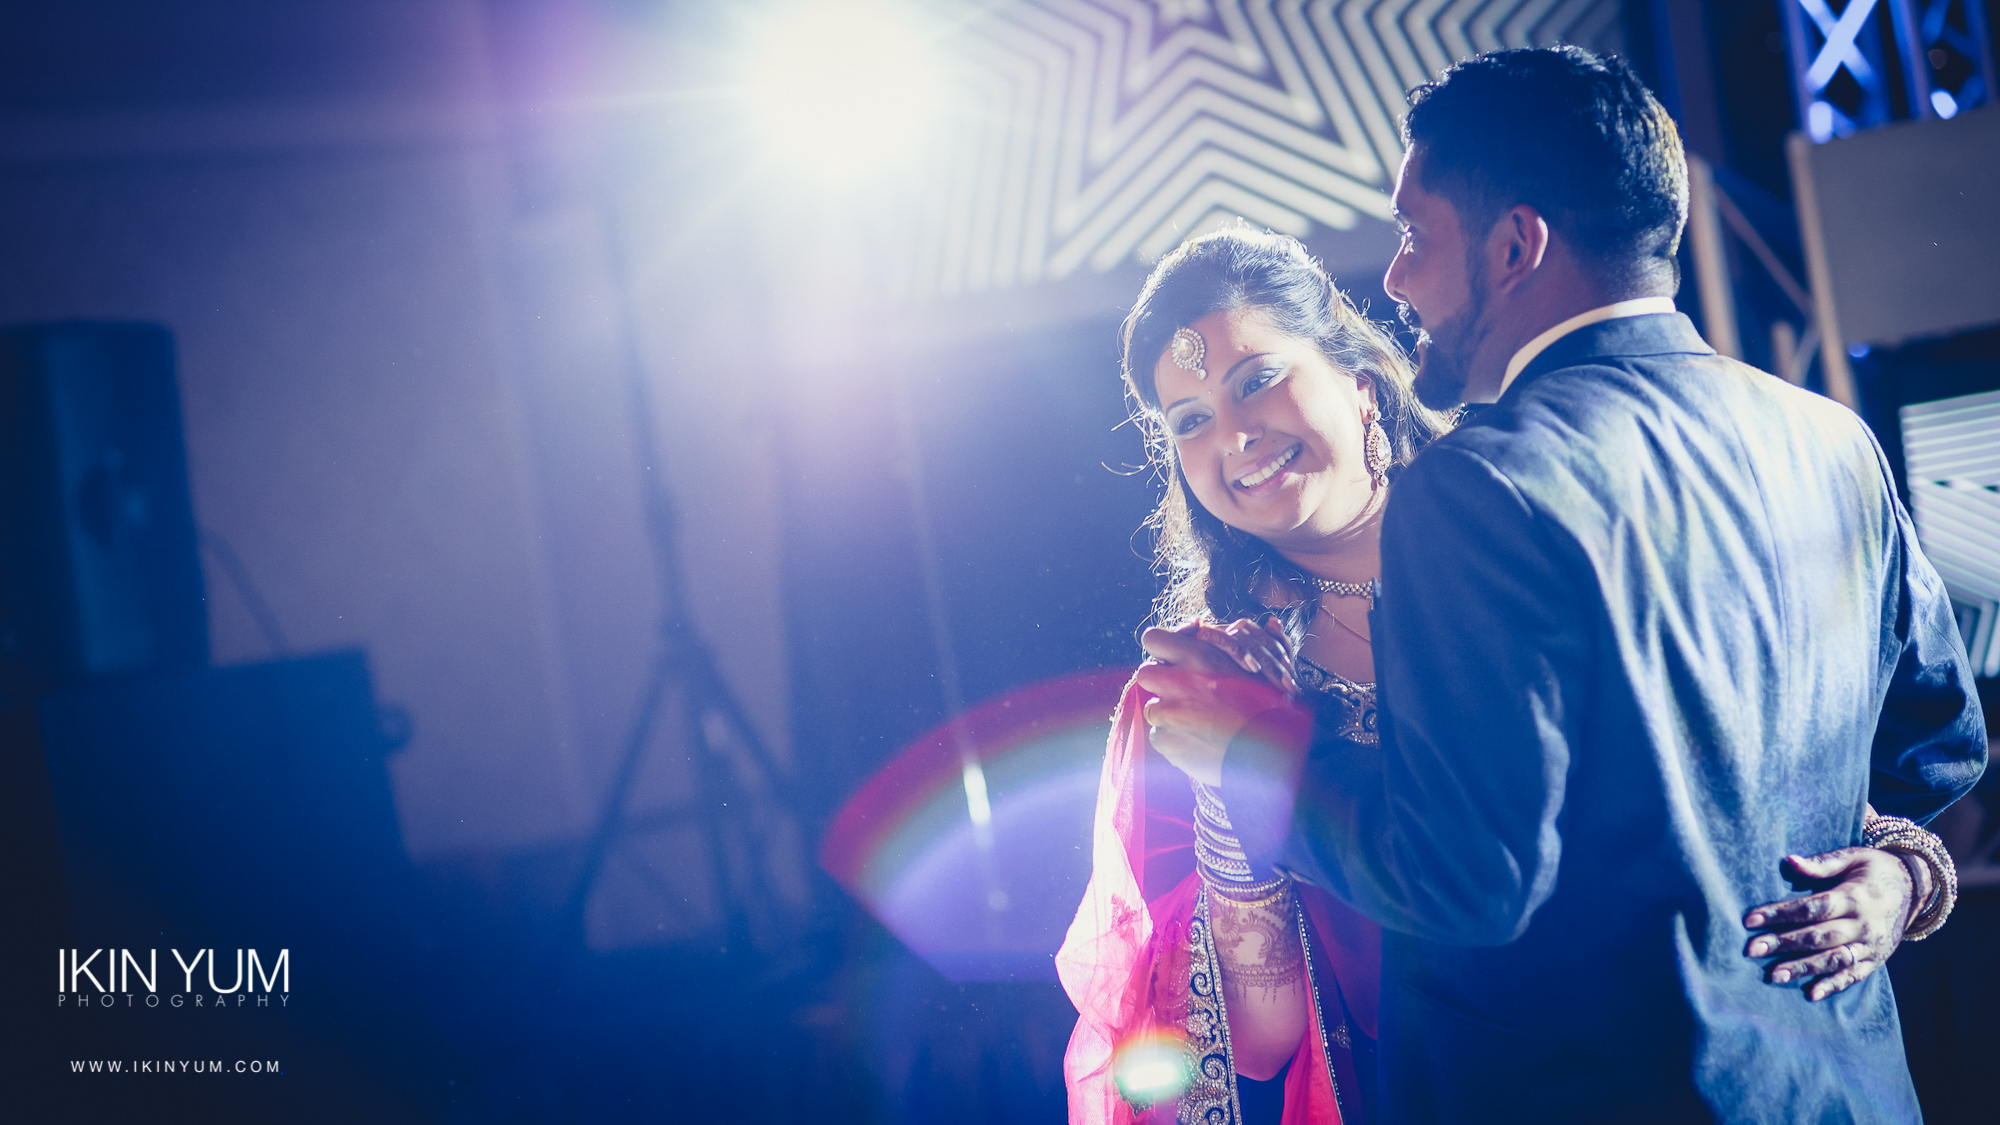 Grand Connaught Rooms Wedding - Minal & Raj - Ikin Yum Photography-140.jpg